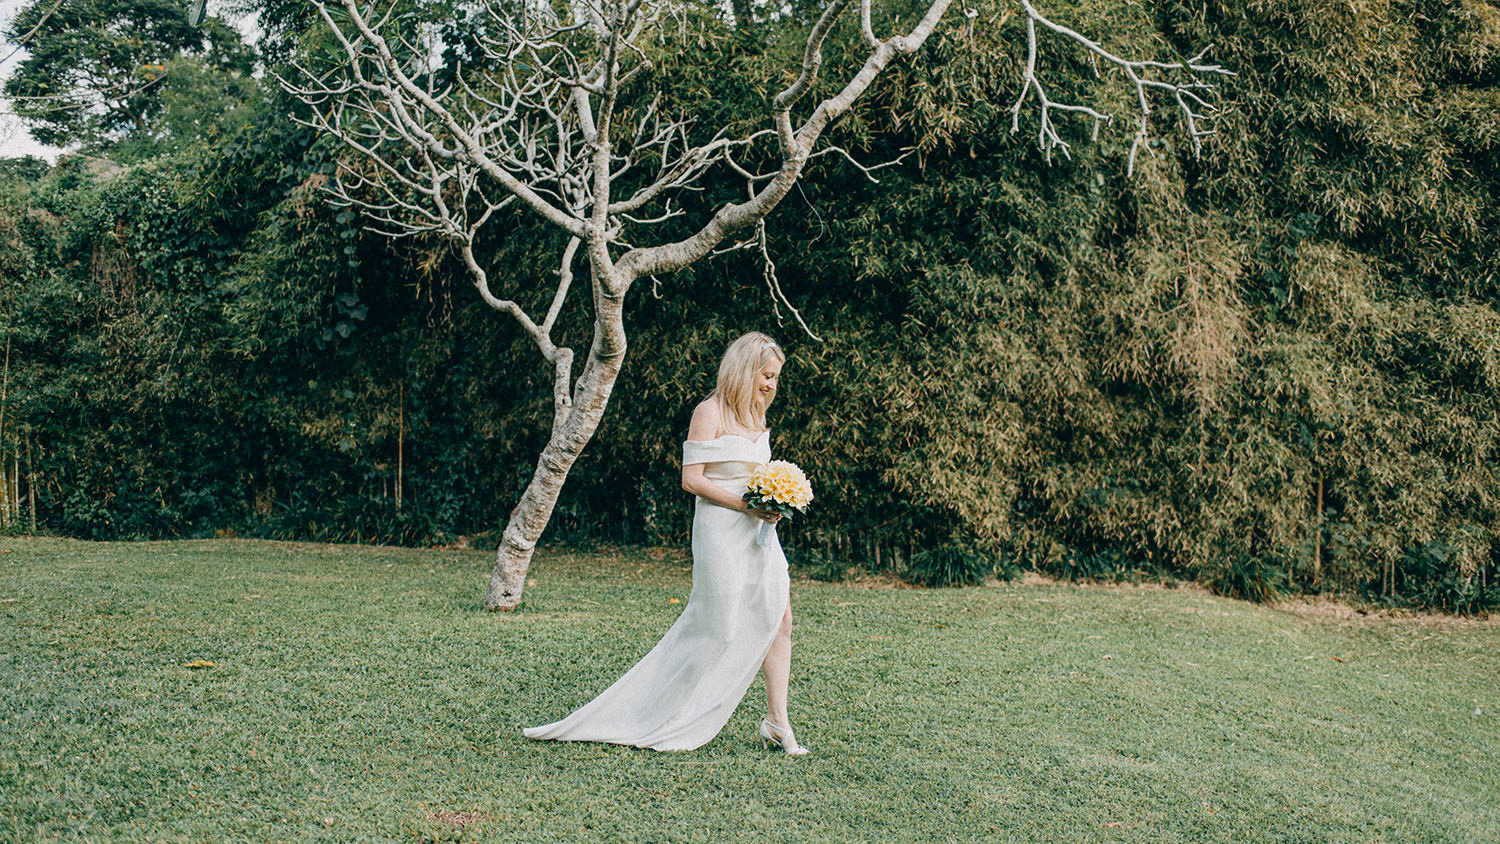 Elopement Wedding Video in Alila Ubud — Lovely Chris & Lucy